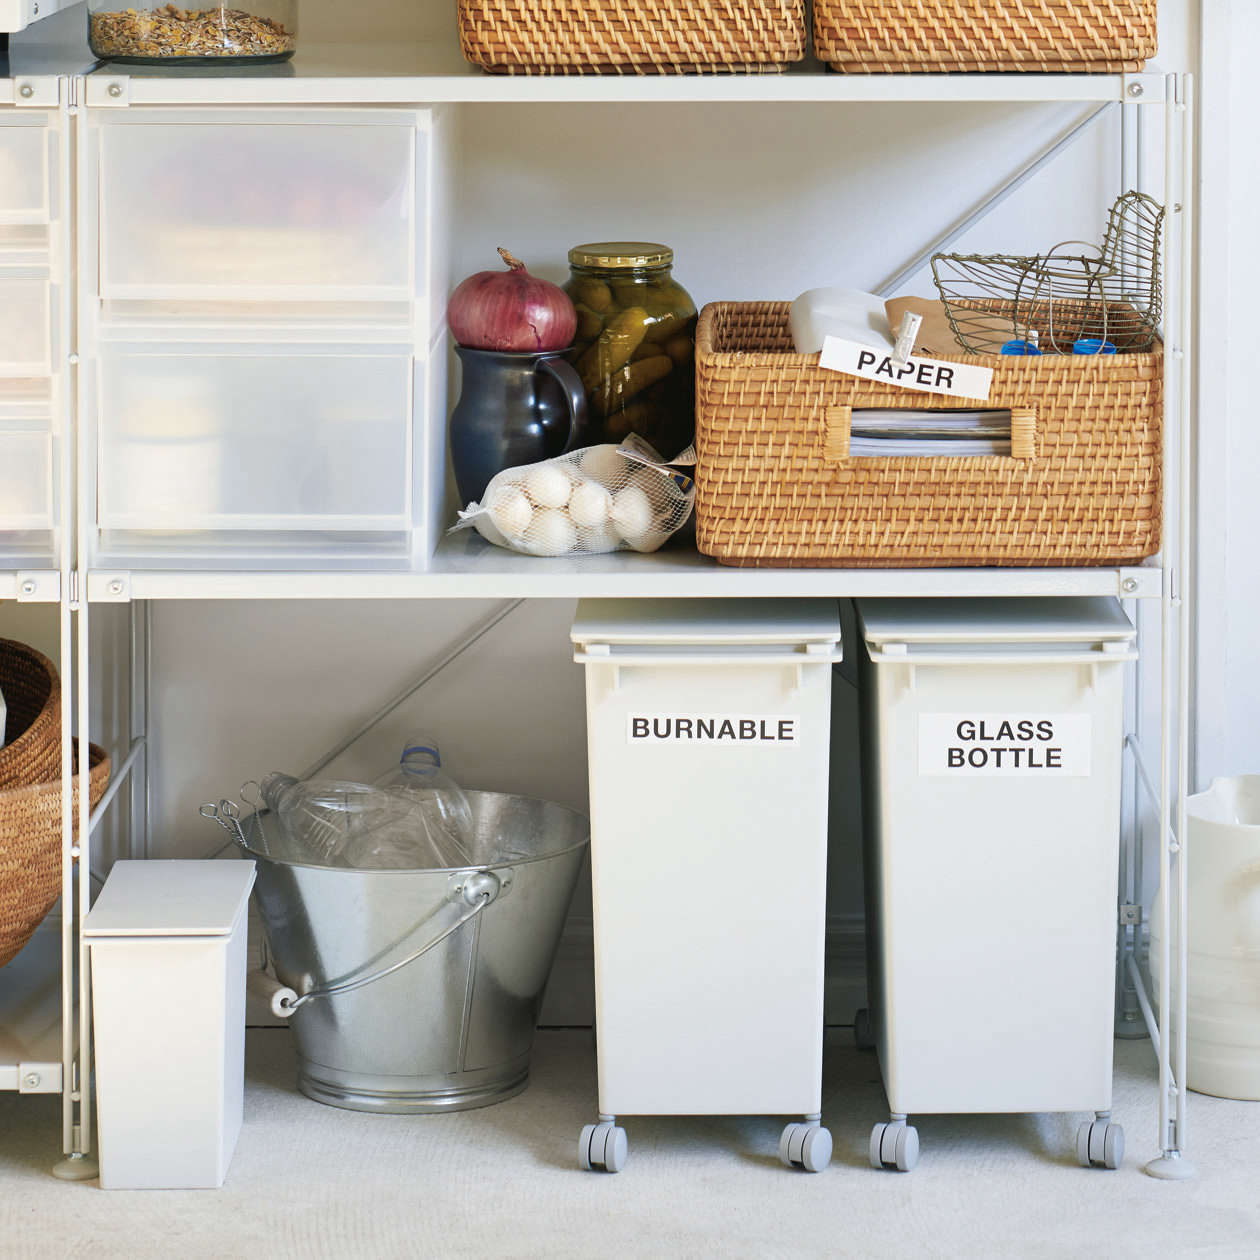 10 Easy Pieces: Recycling Bins